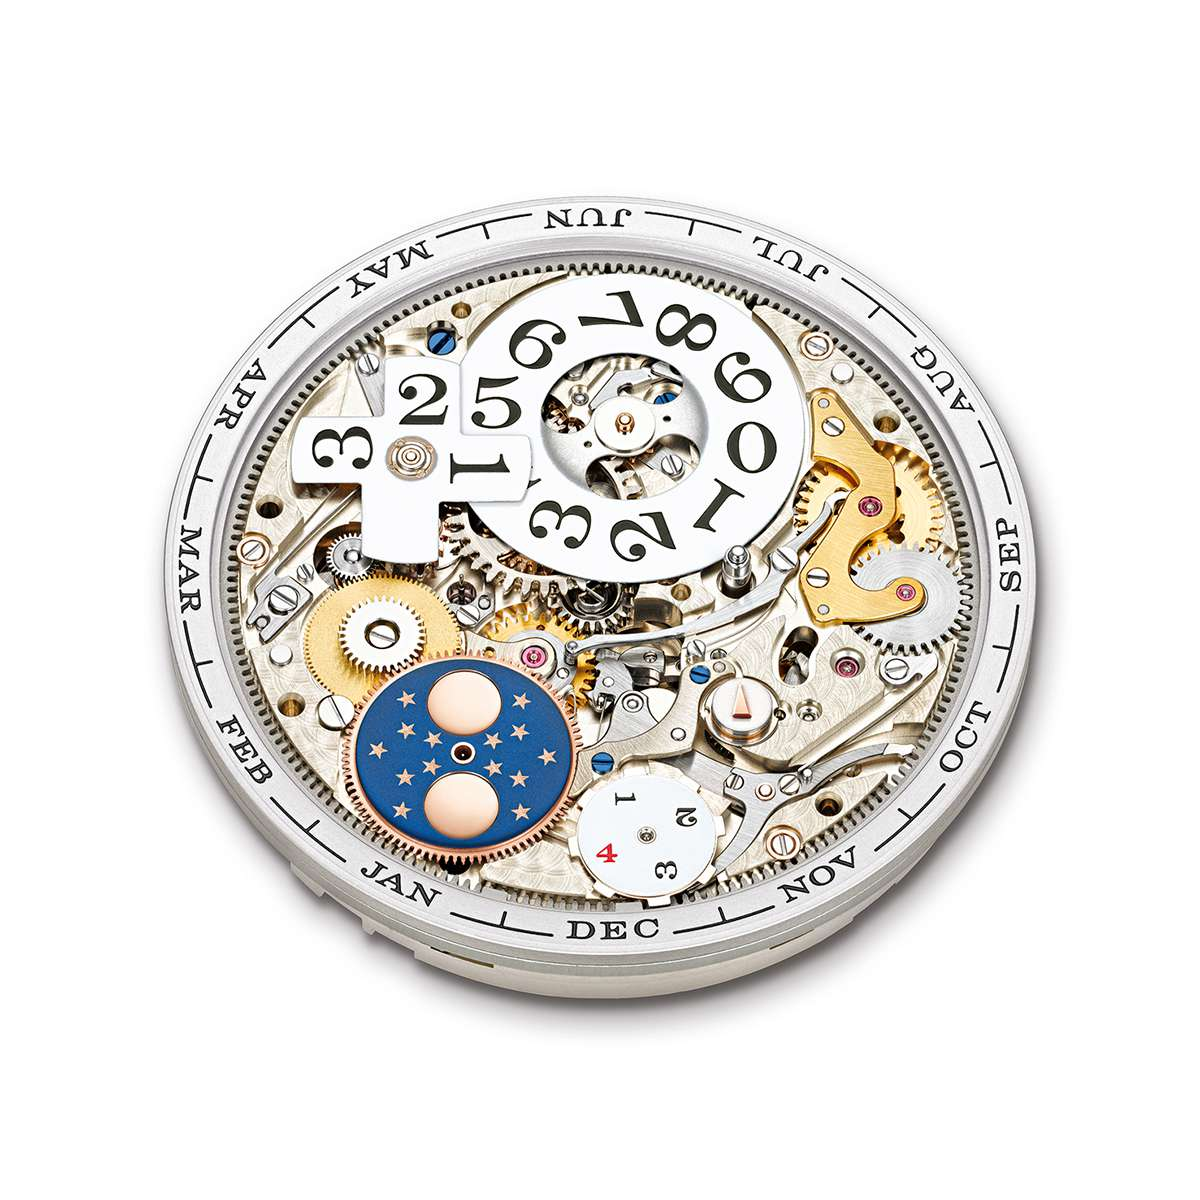 Front side of the L082 movement